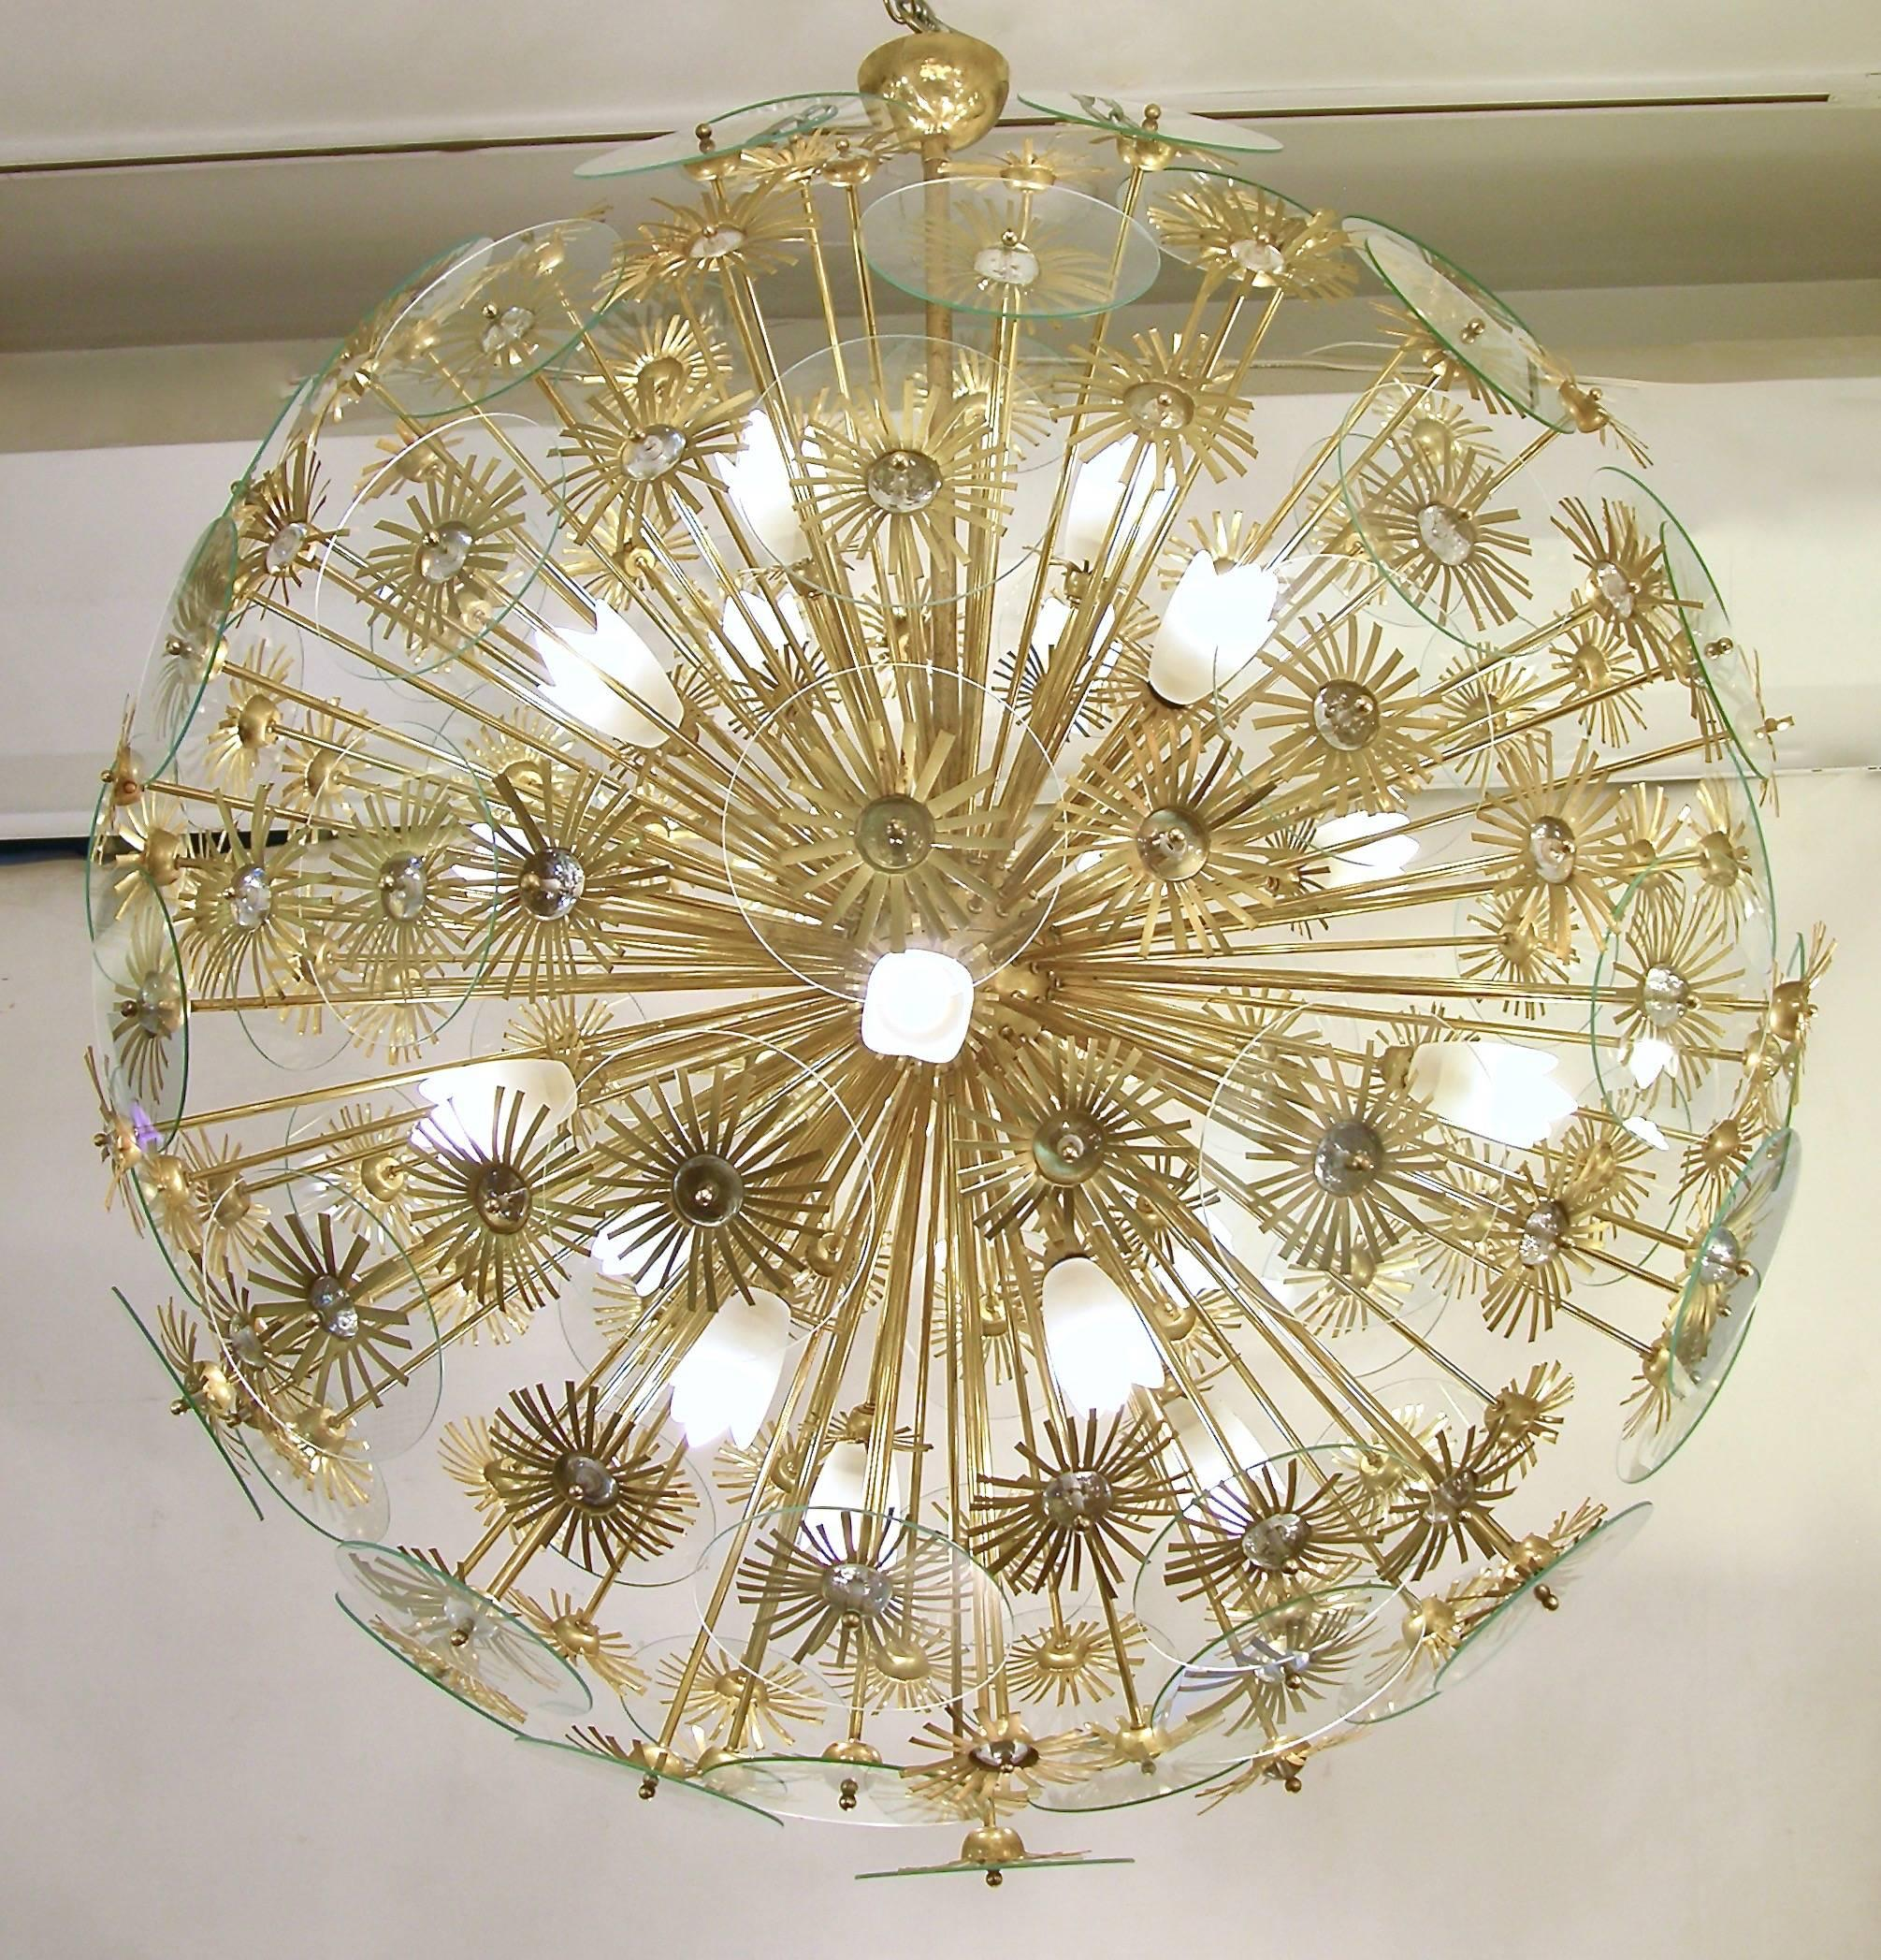 room size gold chandelier full urchin mid new fixture design dining of light modern century chandelierliving with